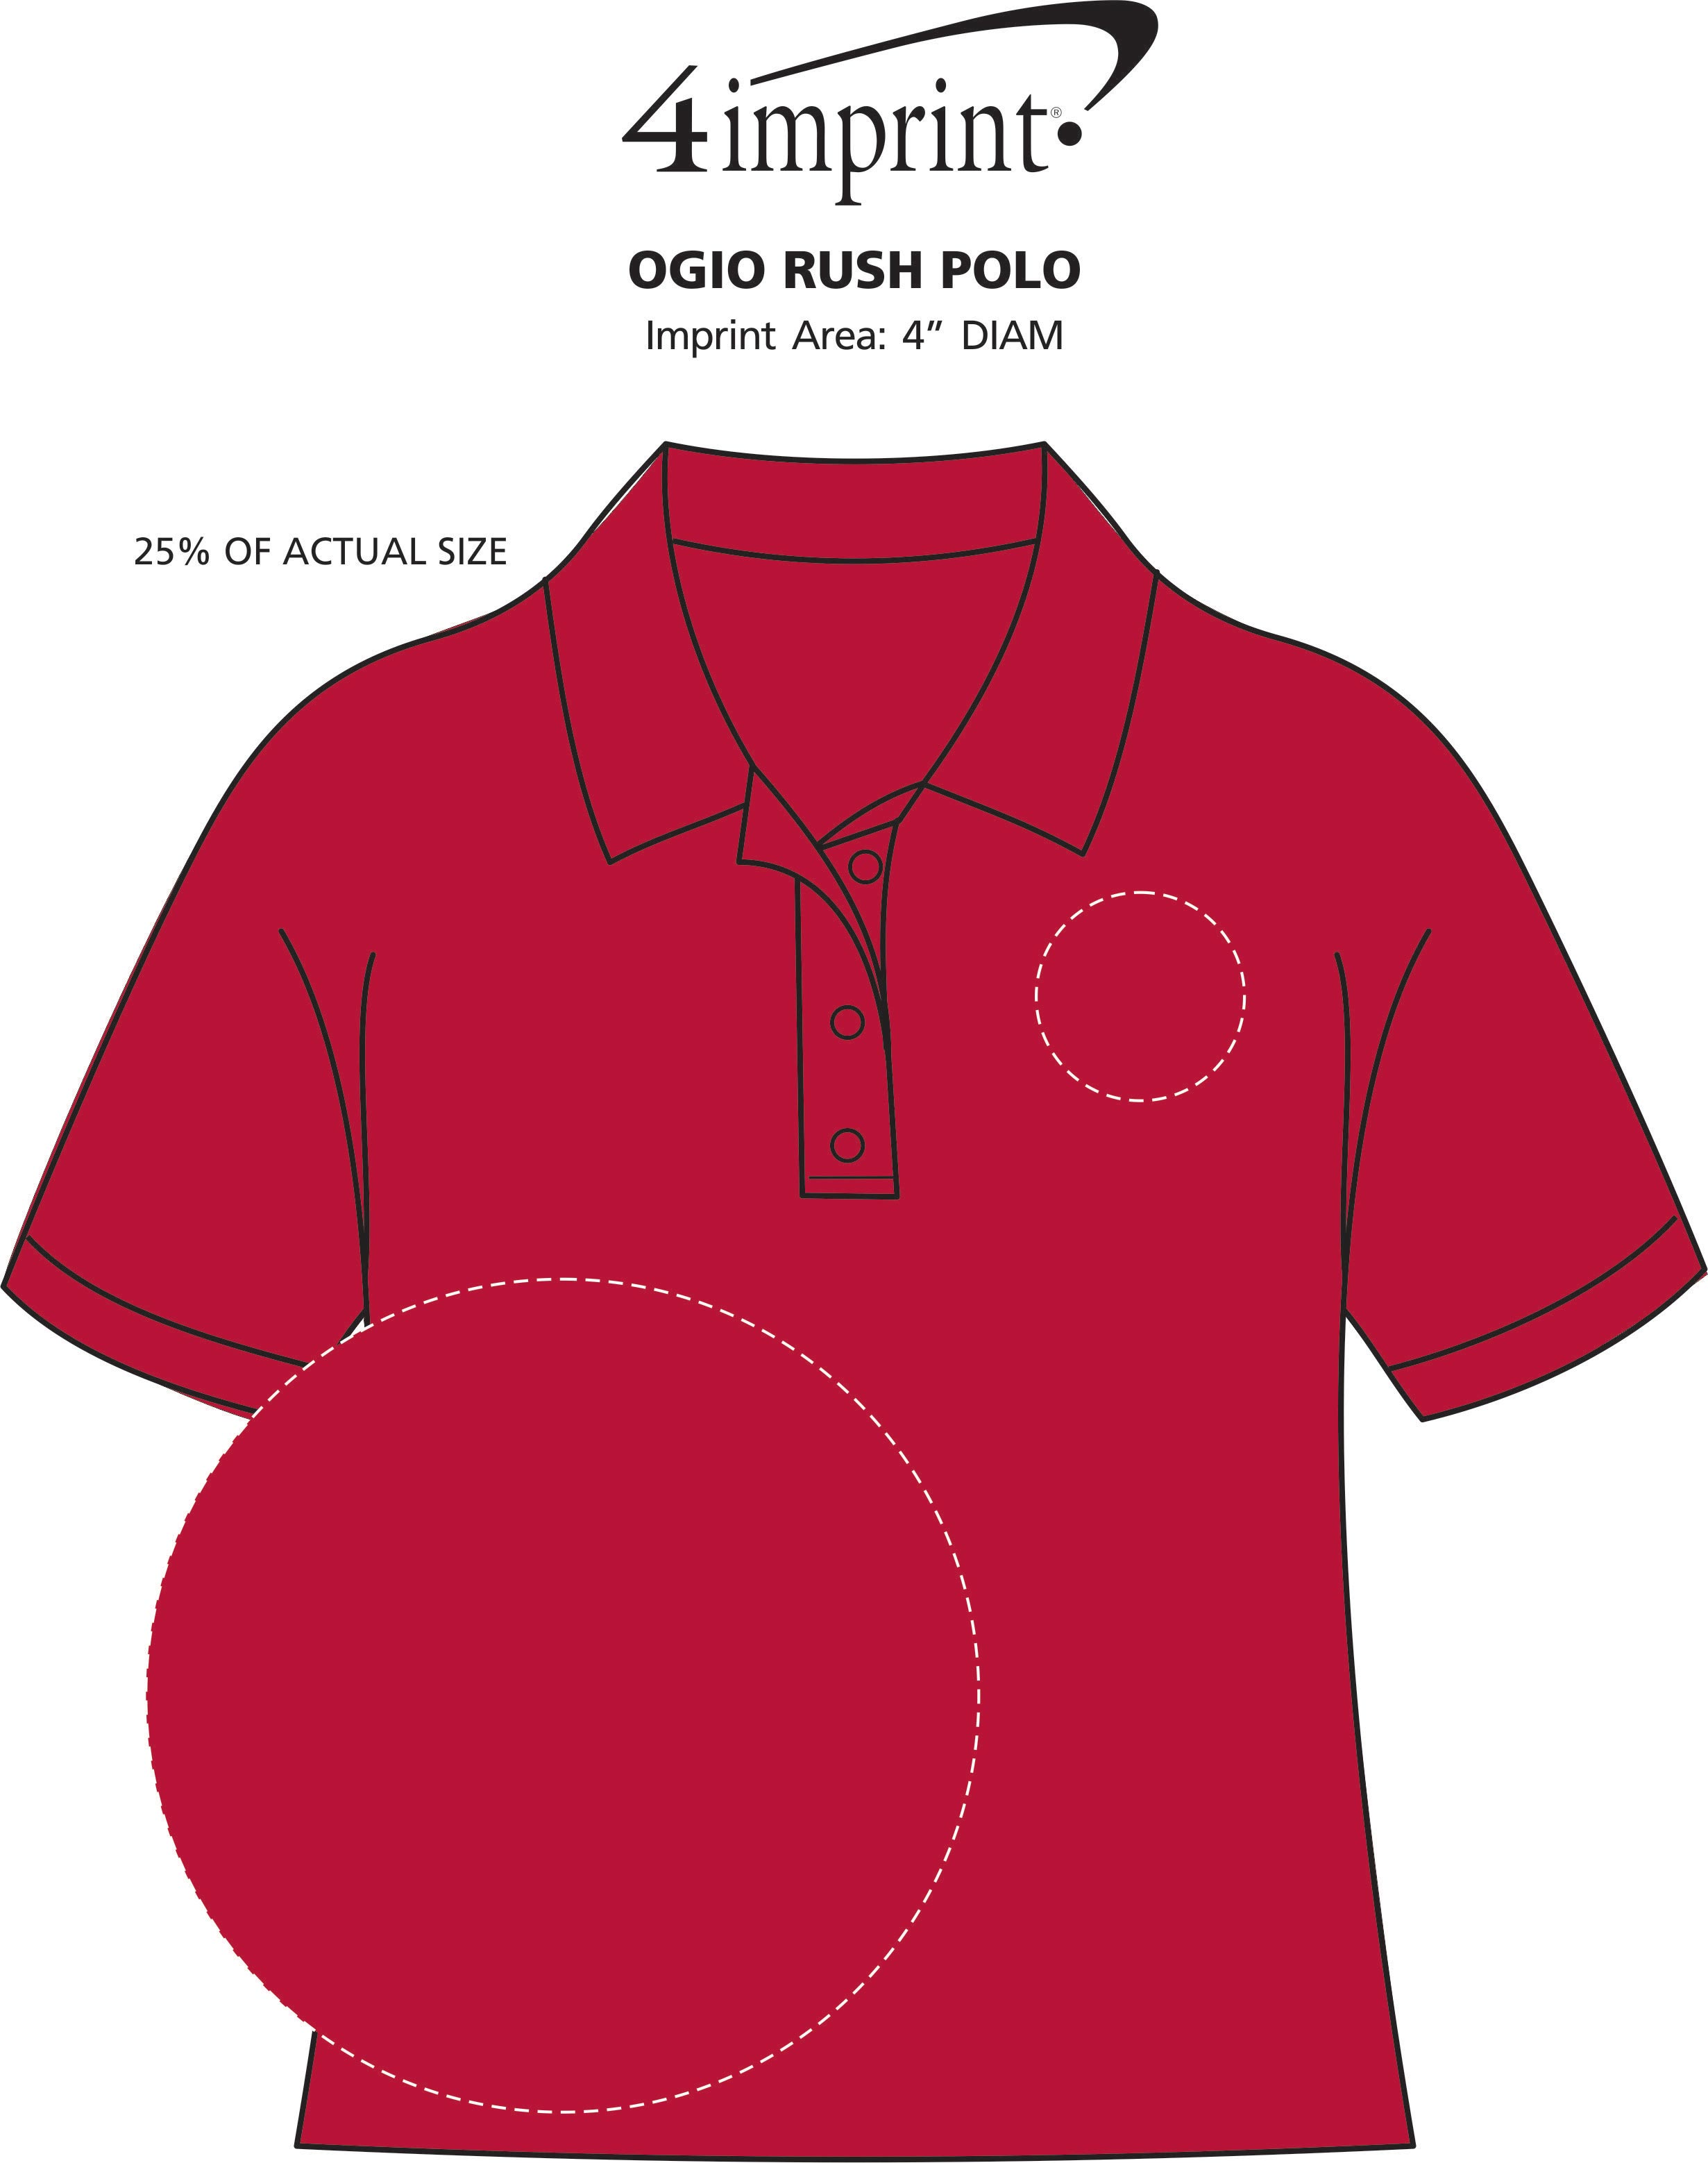 Imprint Area of OGIO Rush Polo